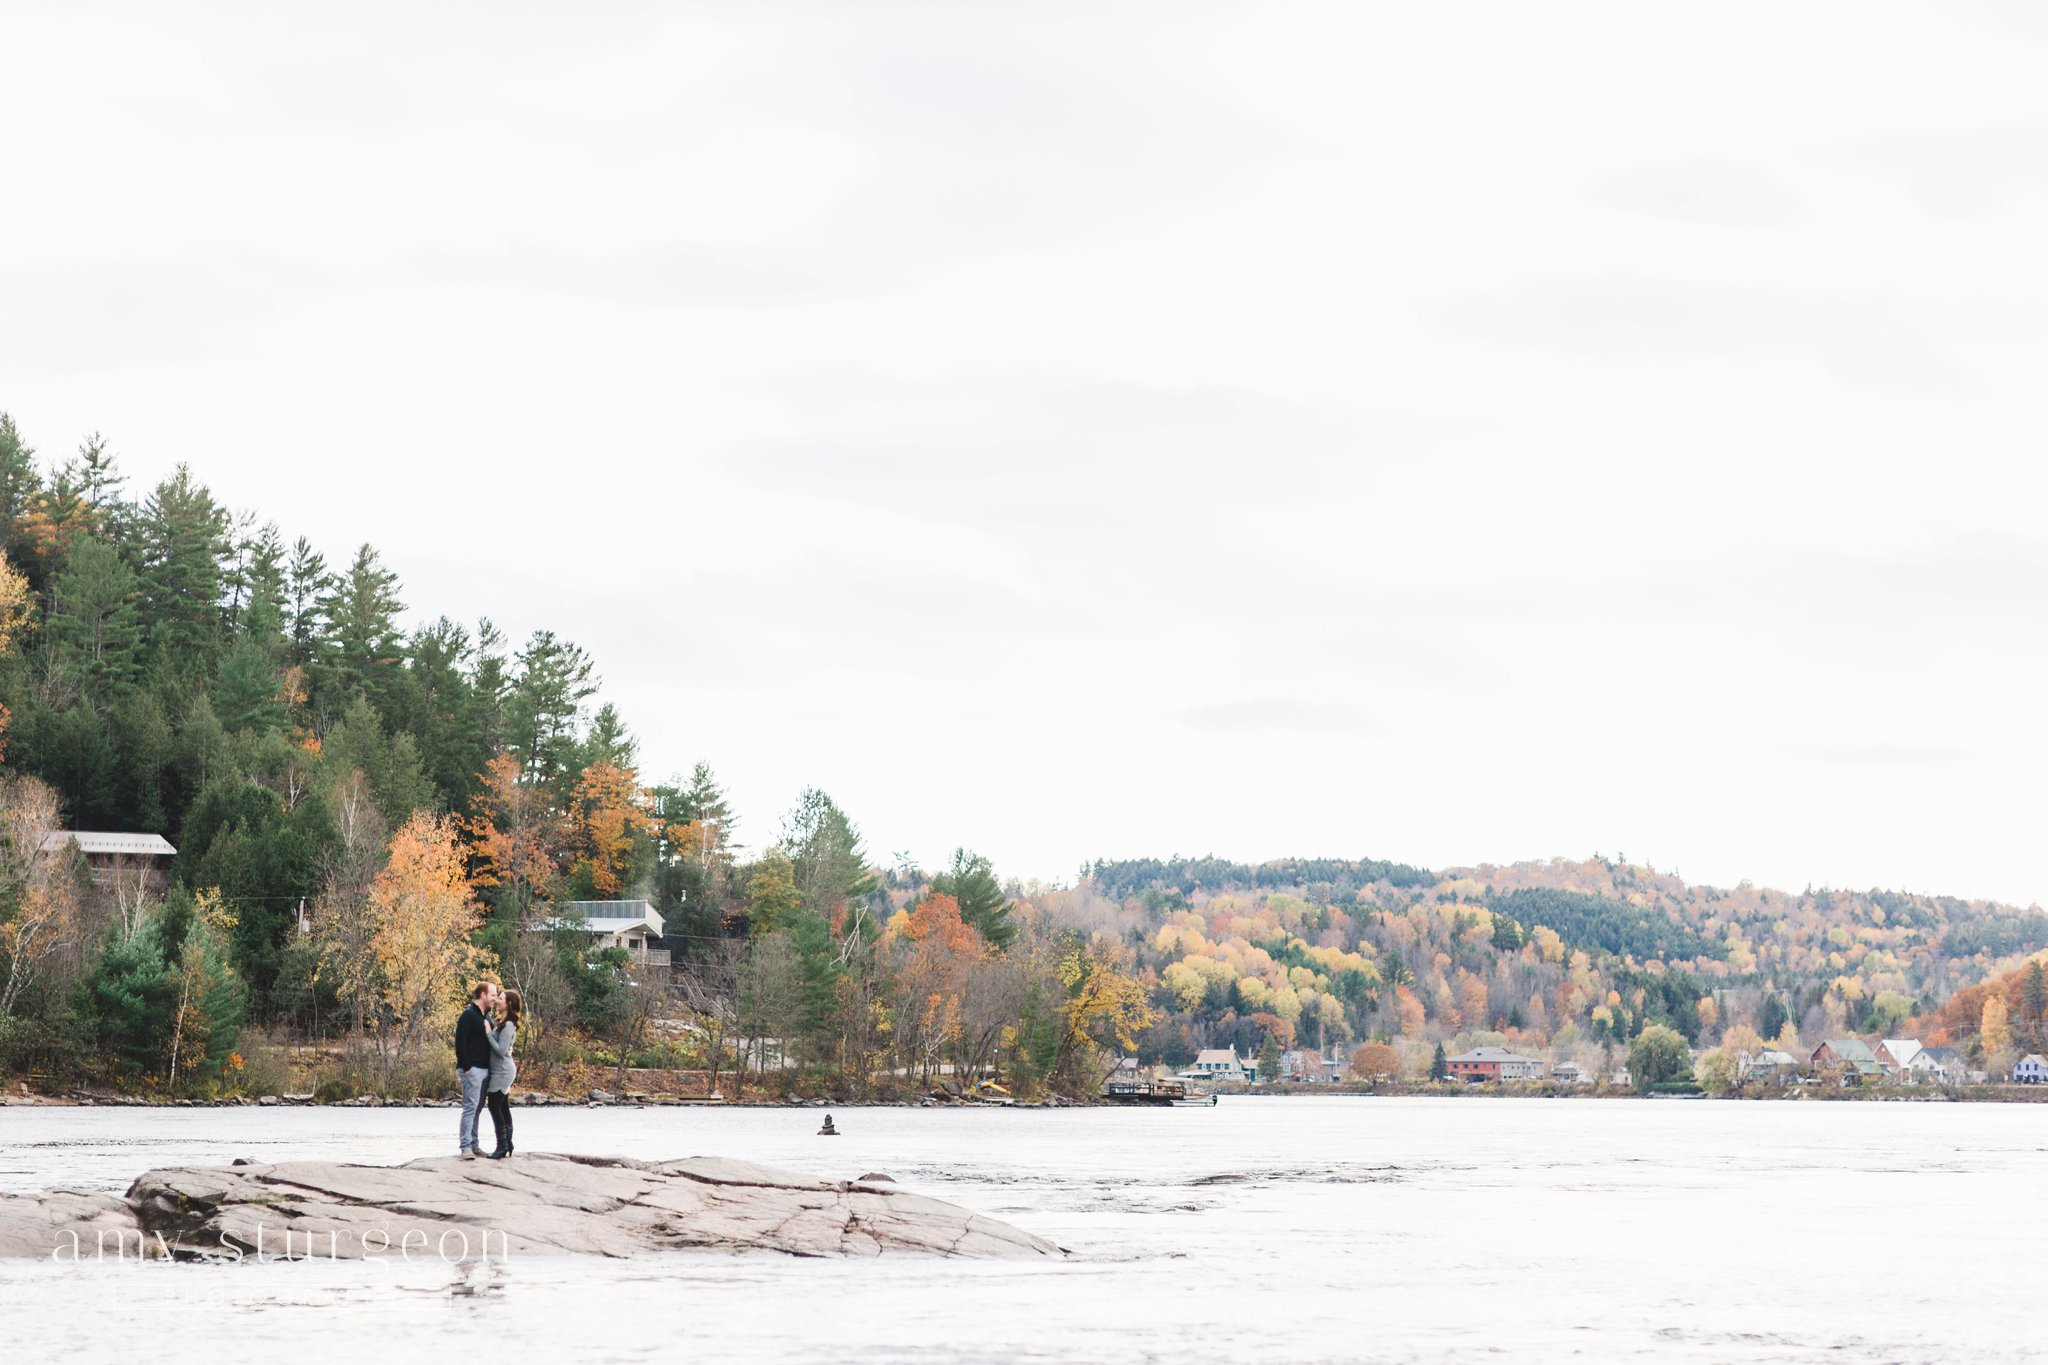 The incredible Fall landscape at the Wakefield Engagement Session by the covered bridge